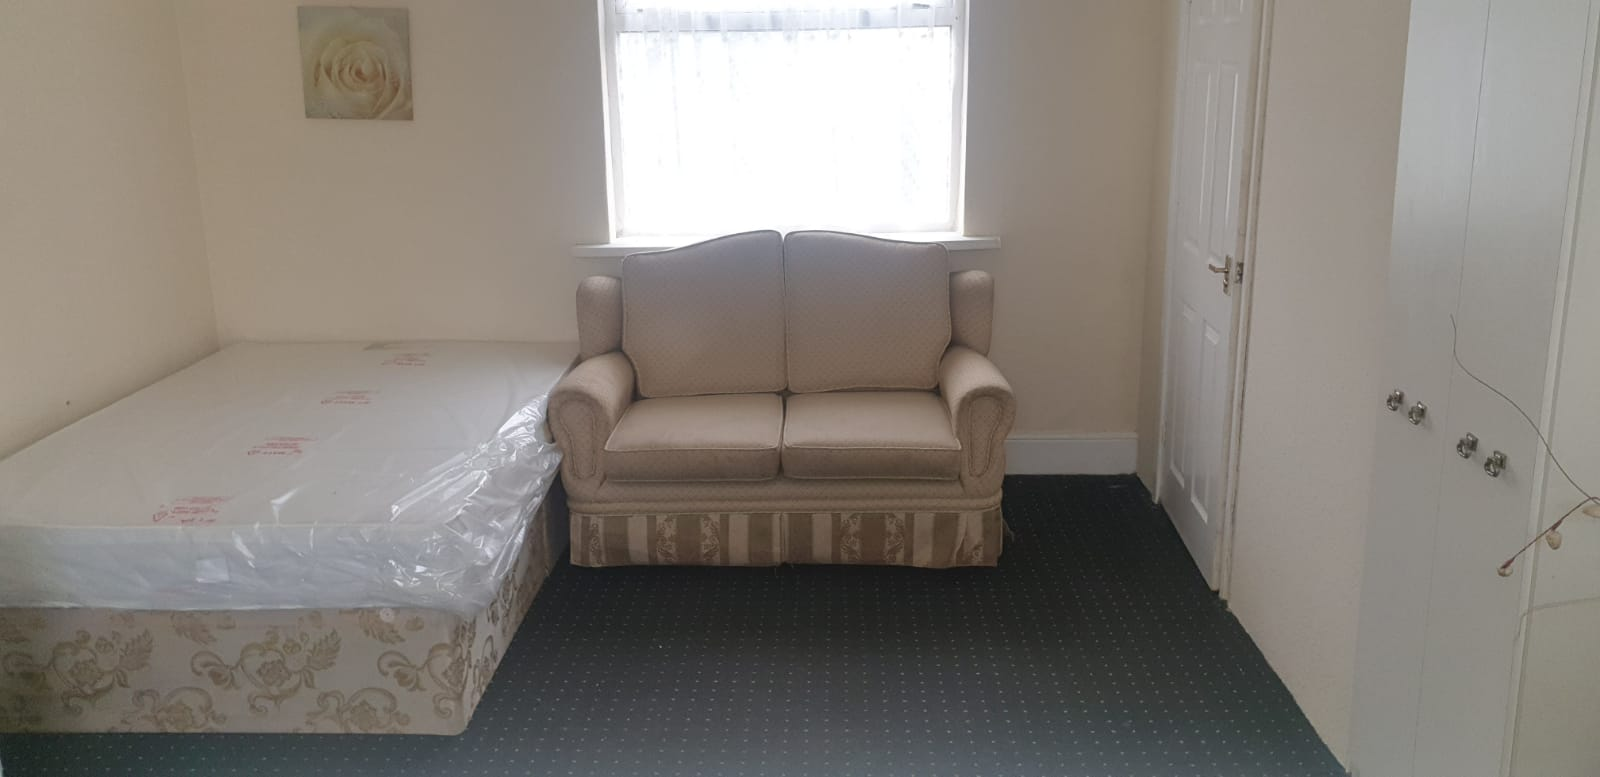 REGIONAL HOMES ARE PLEASED TO OFFER: FURNISHED FIRST FLOOR STUDIO FLAT, HOLYHEAD RD, HANDSWORTH, DSS ACCEPTED